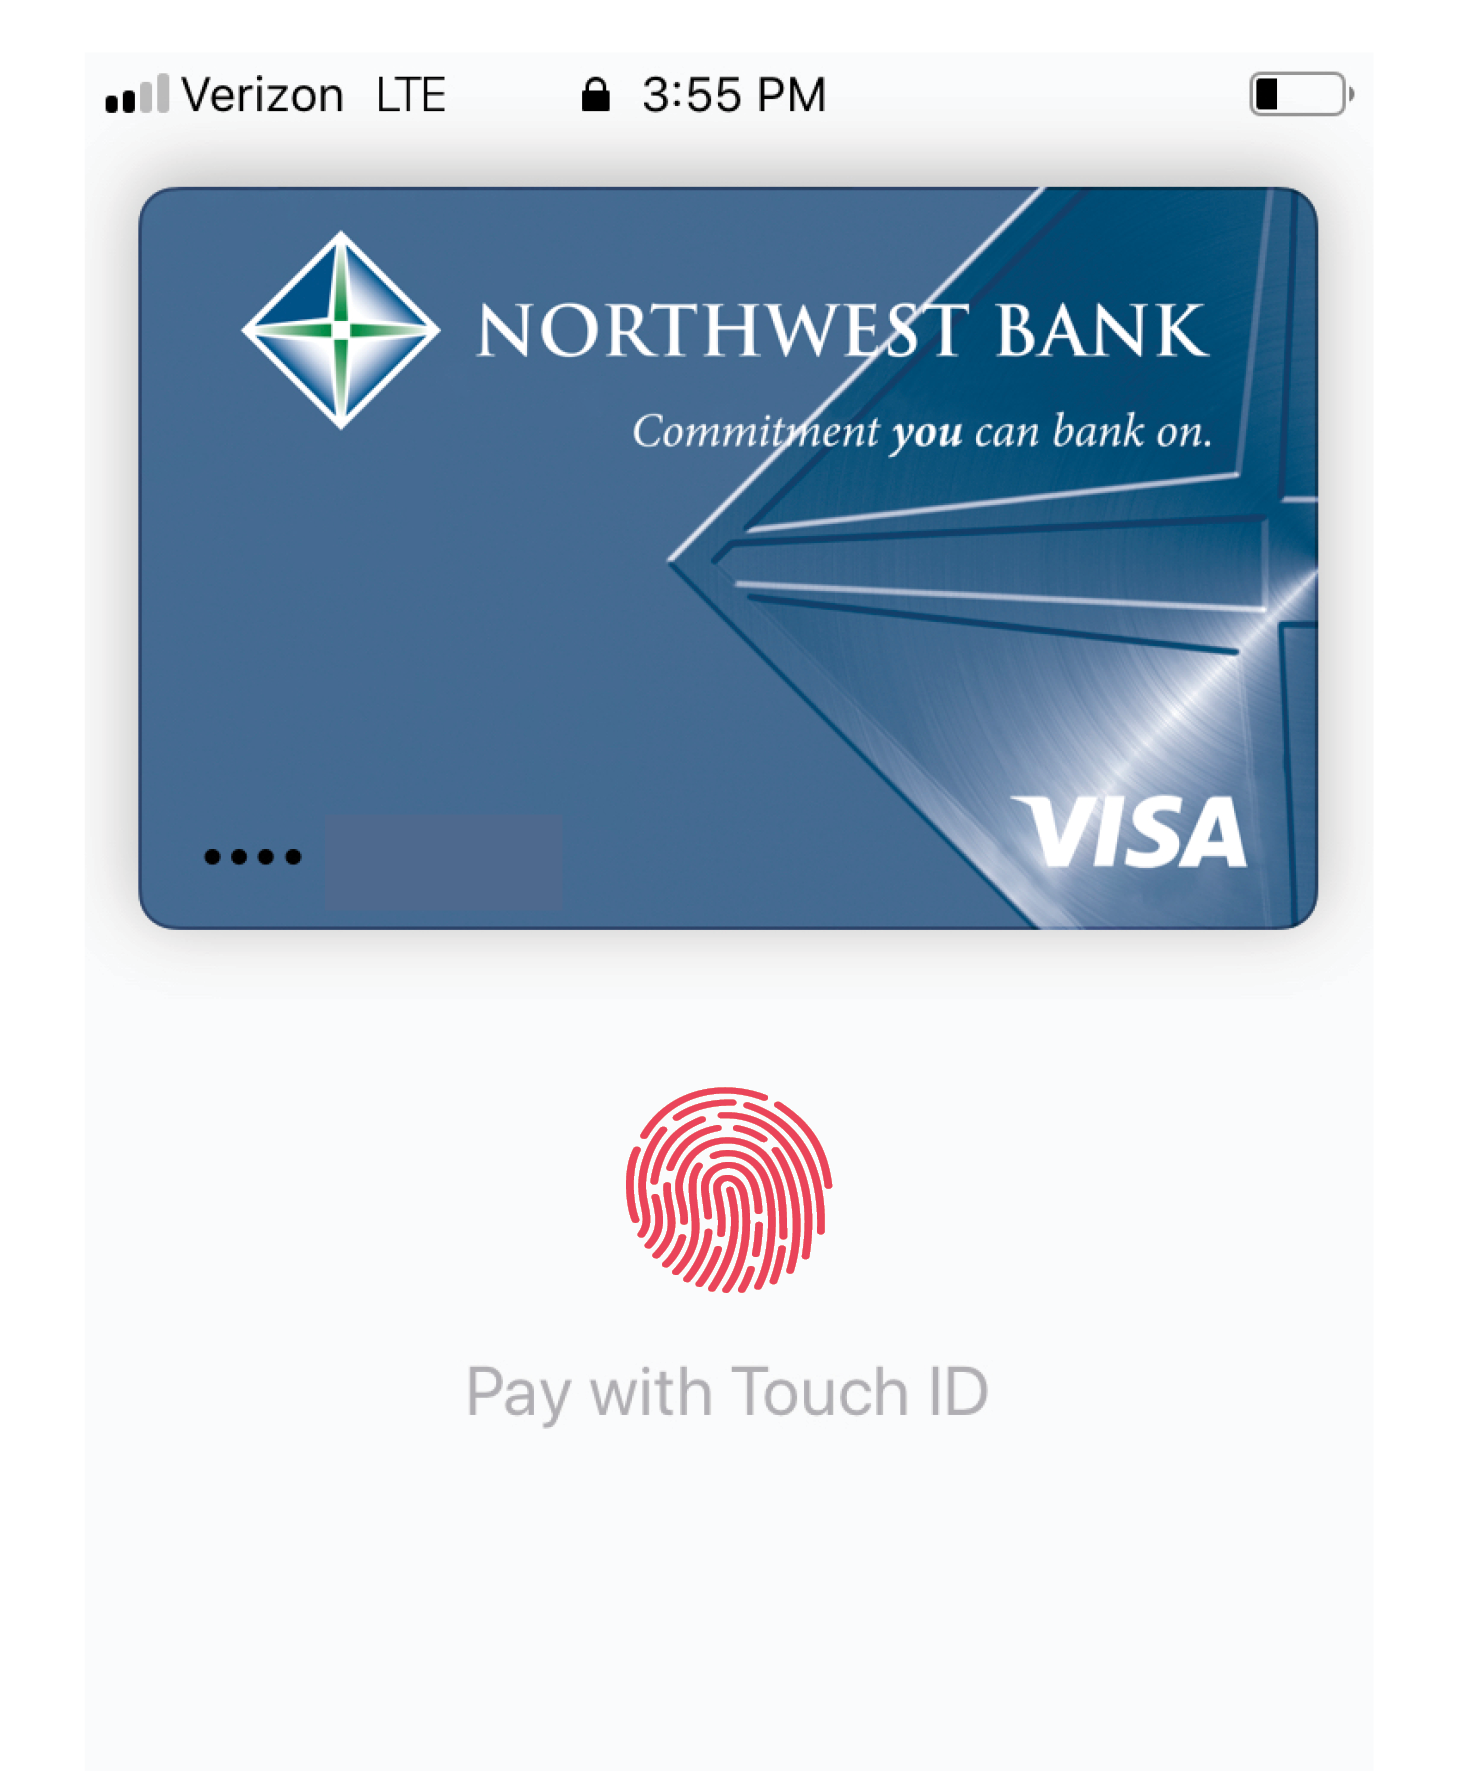 Image of mobile wallet sample.